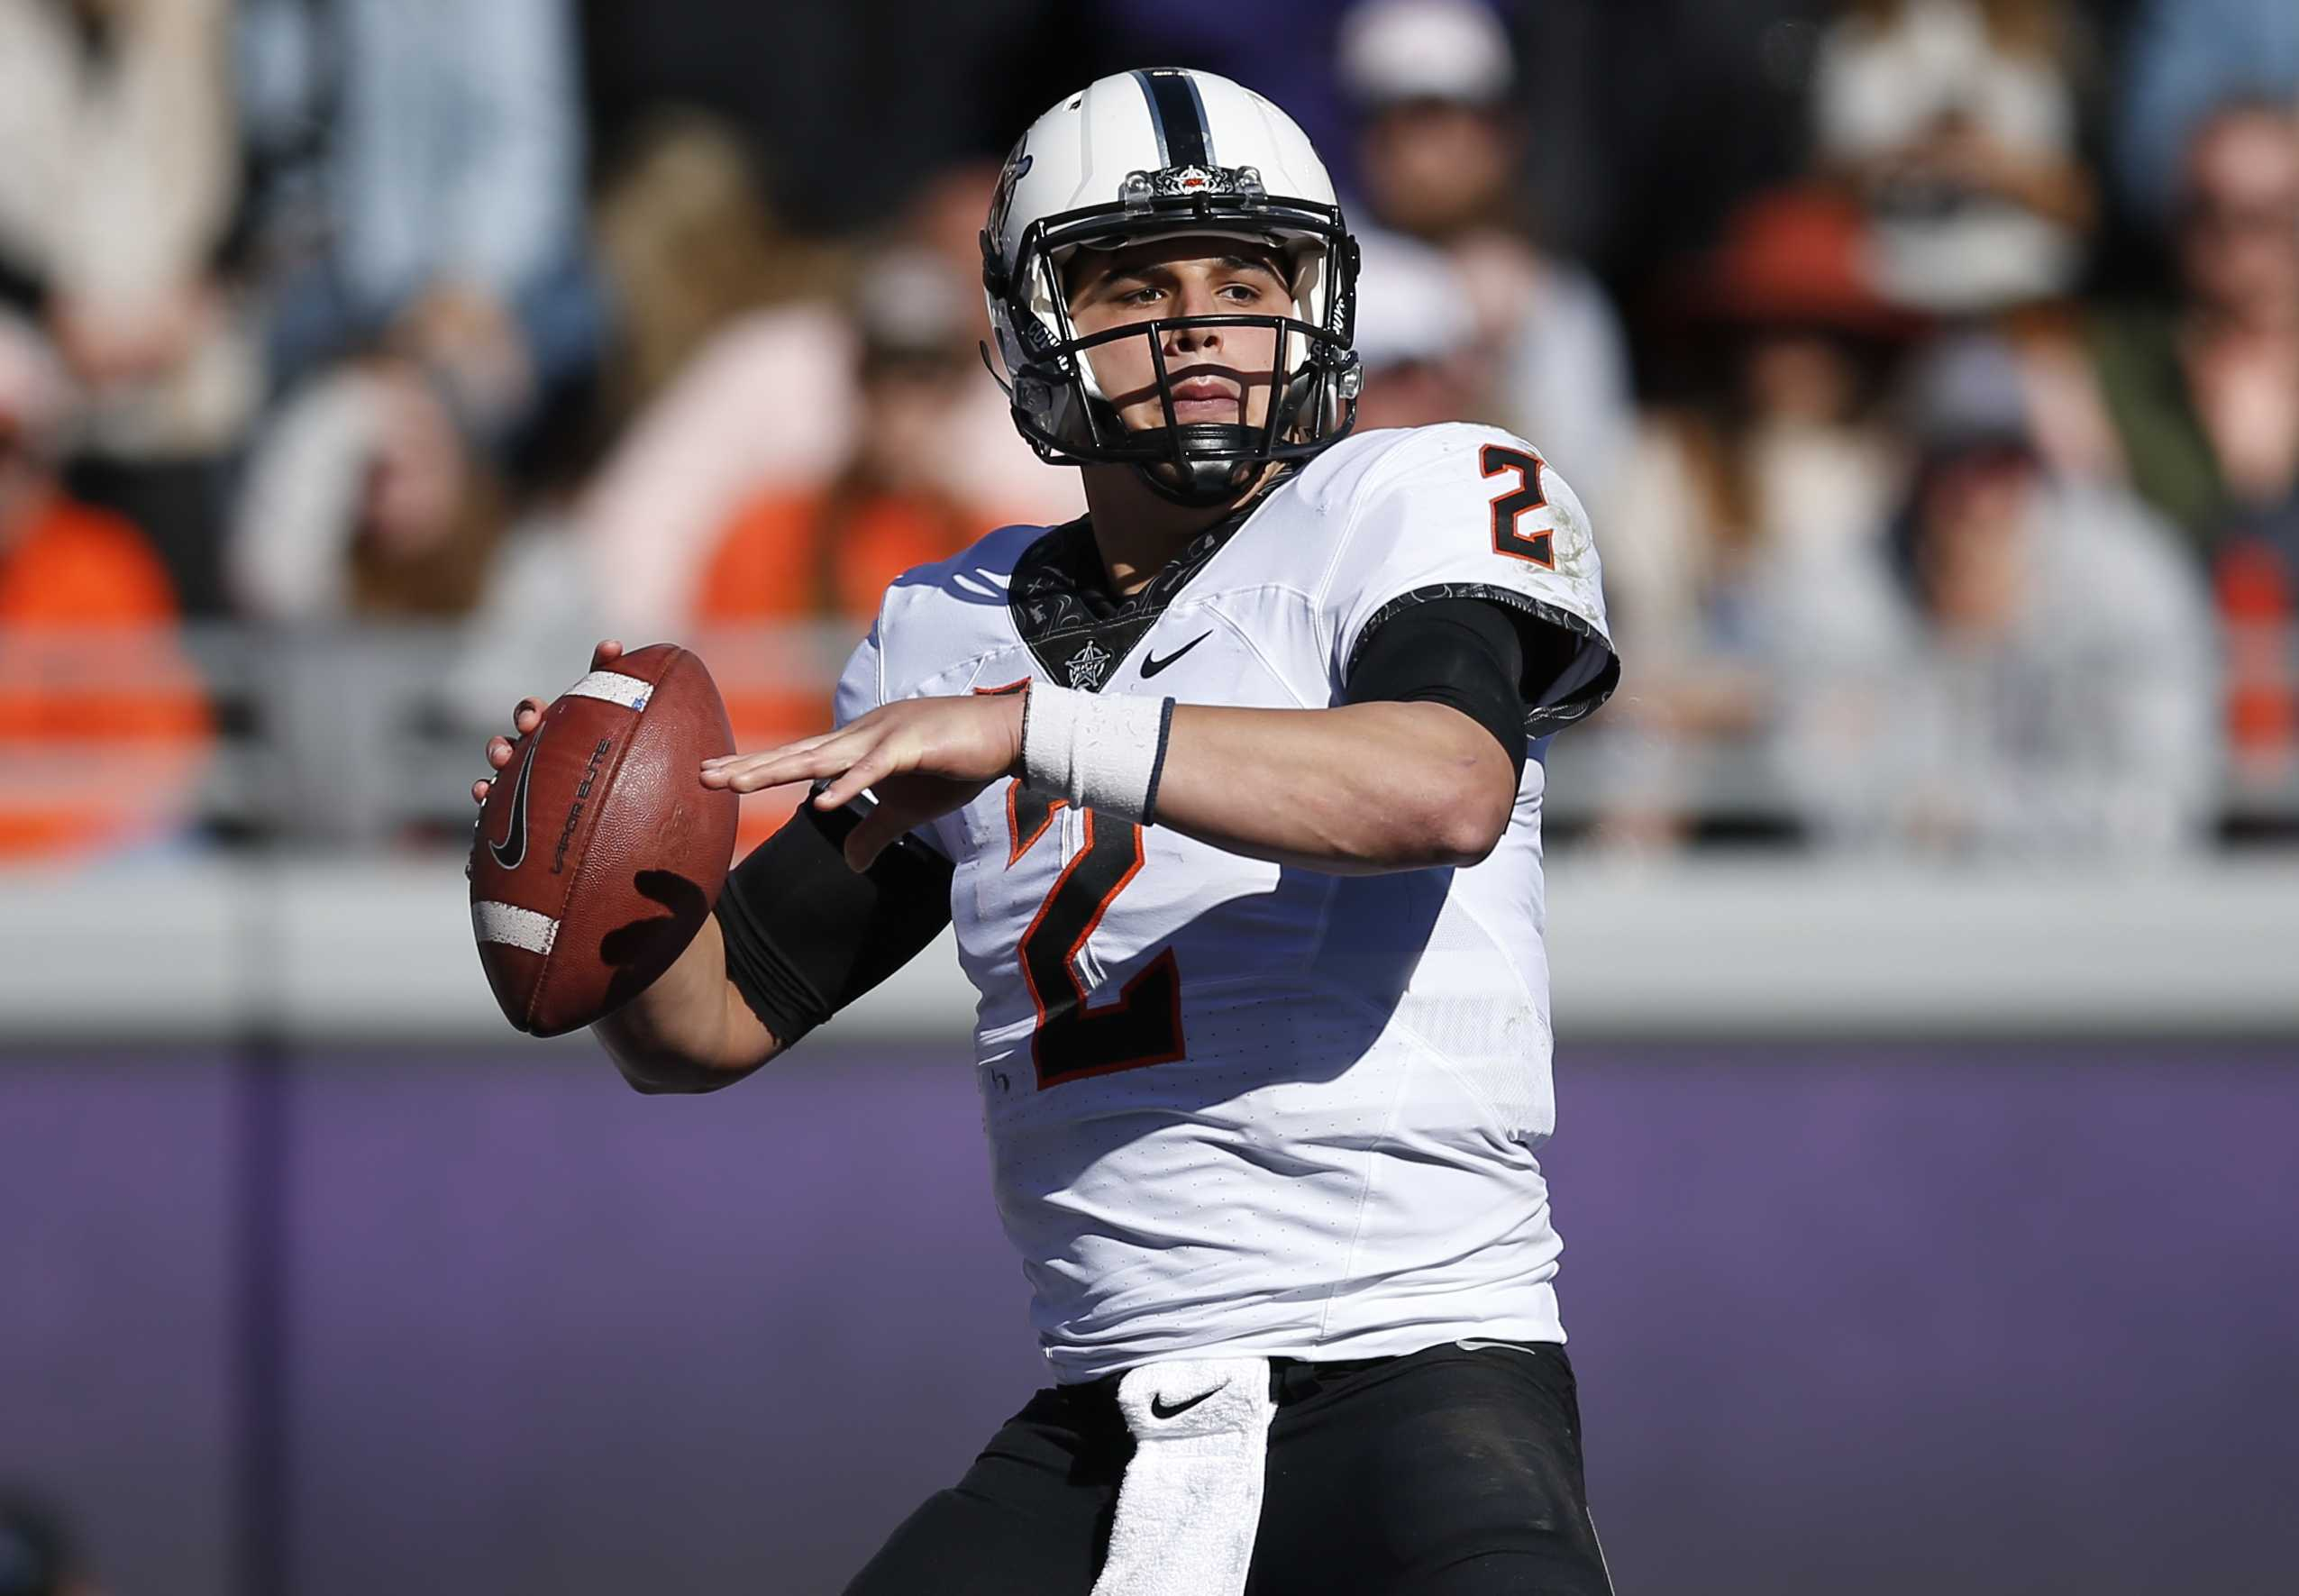 Oklahoma State to play Colorado in Alamo Bowl